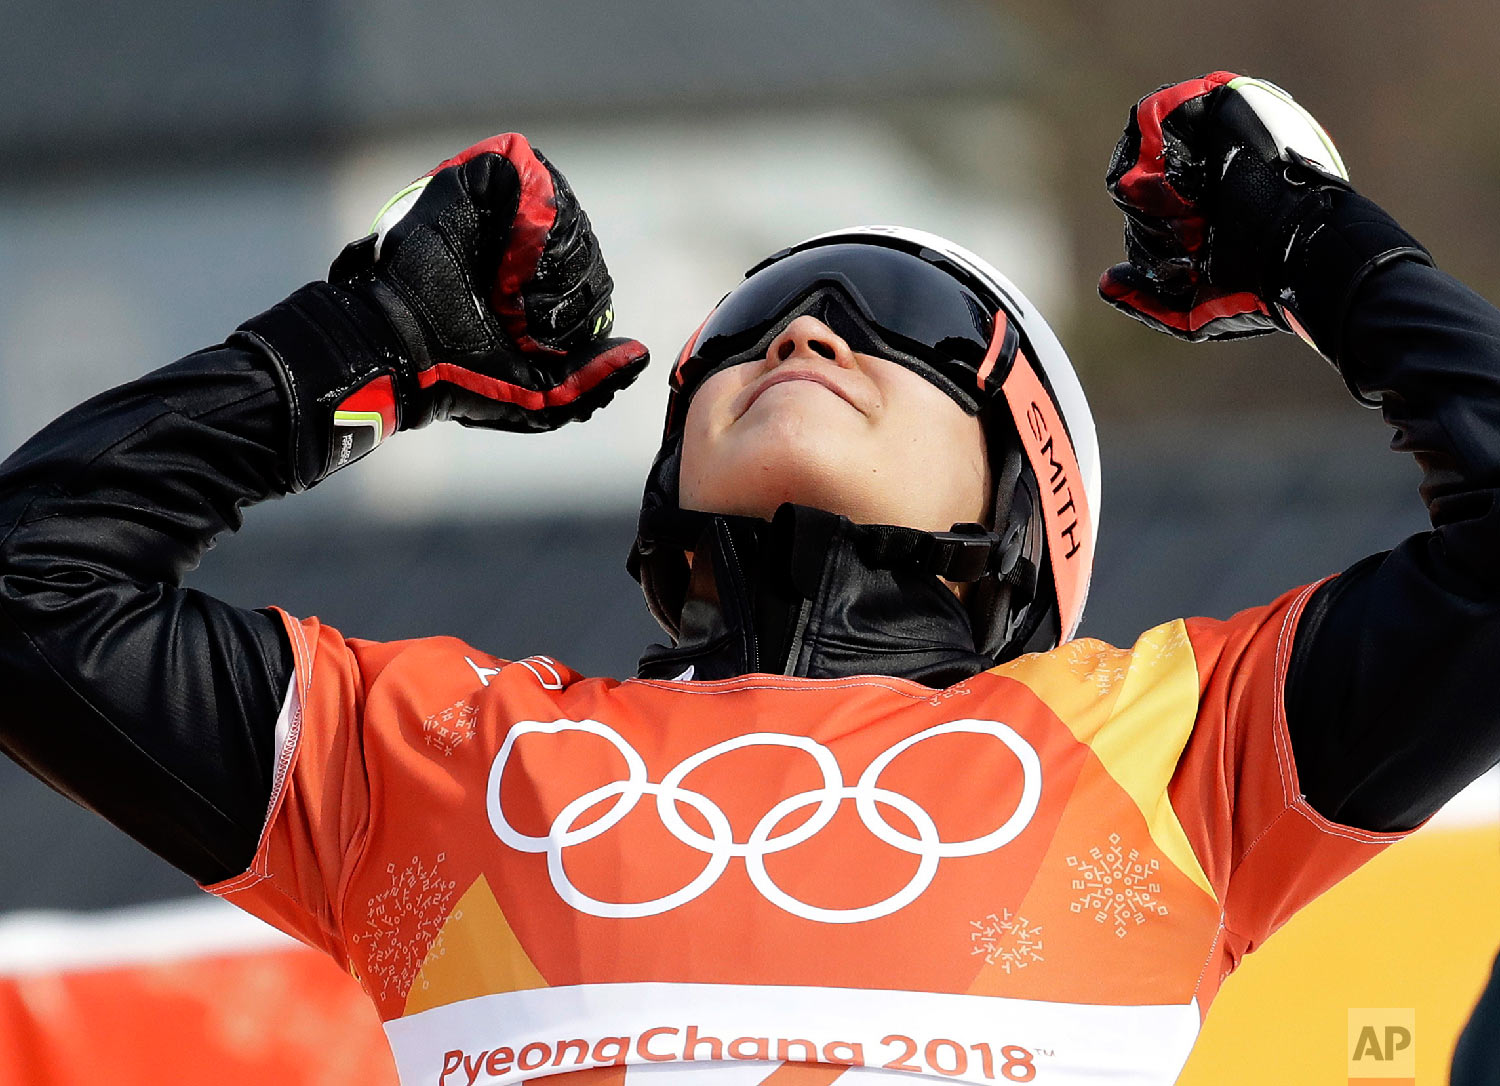 Silver medal winner Lee Sangho, of South Korea, celebrates after winning semifinal during the men's parallel giant slalom semifinal at Phoenix Snow Park at the 2018 Winter Olympics in Pyeongchang, South Korea, Saturday, Feb. 24, 2018. (AP Photo/Lee Jin-man)